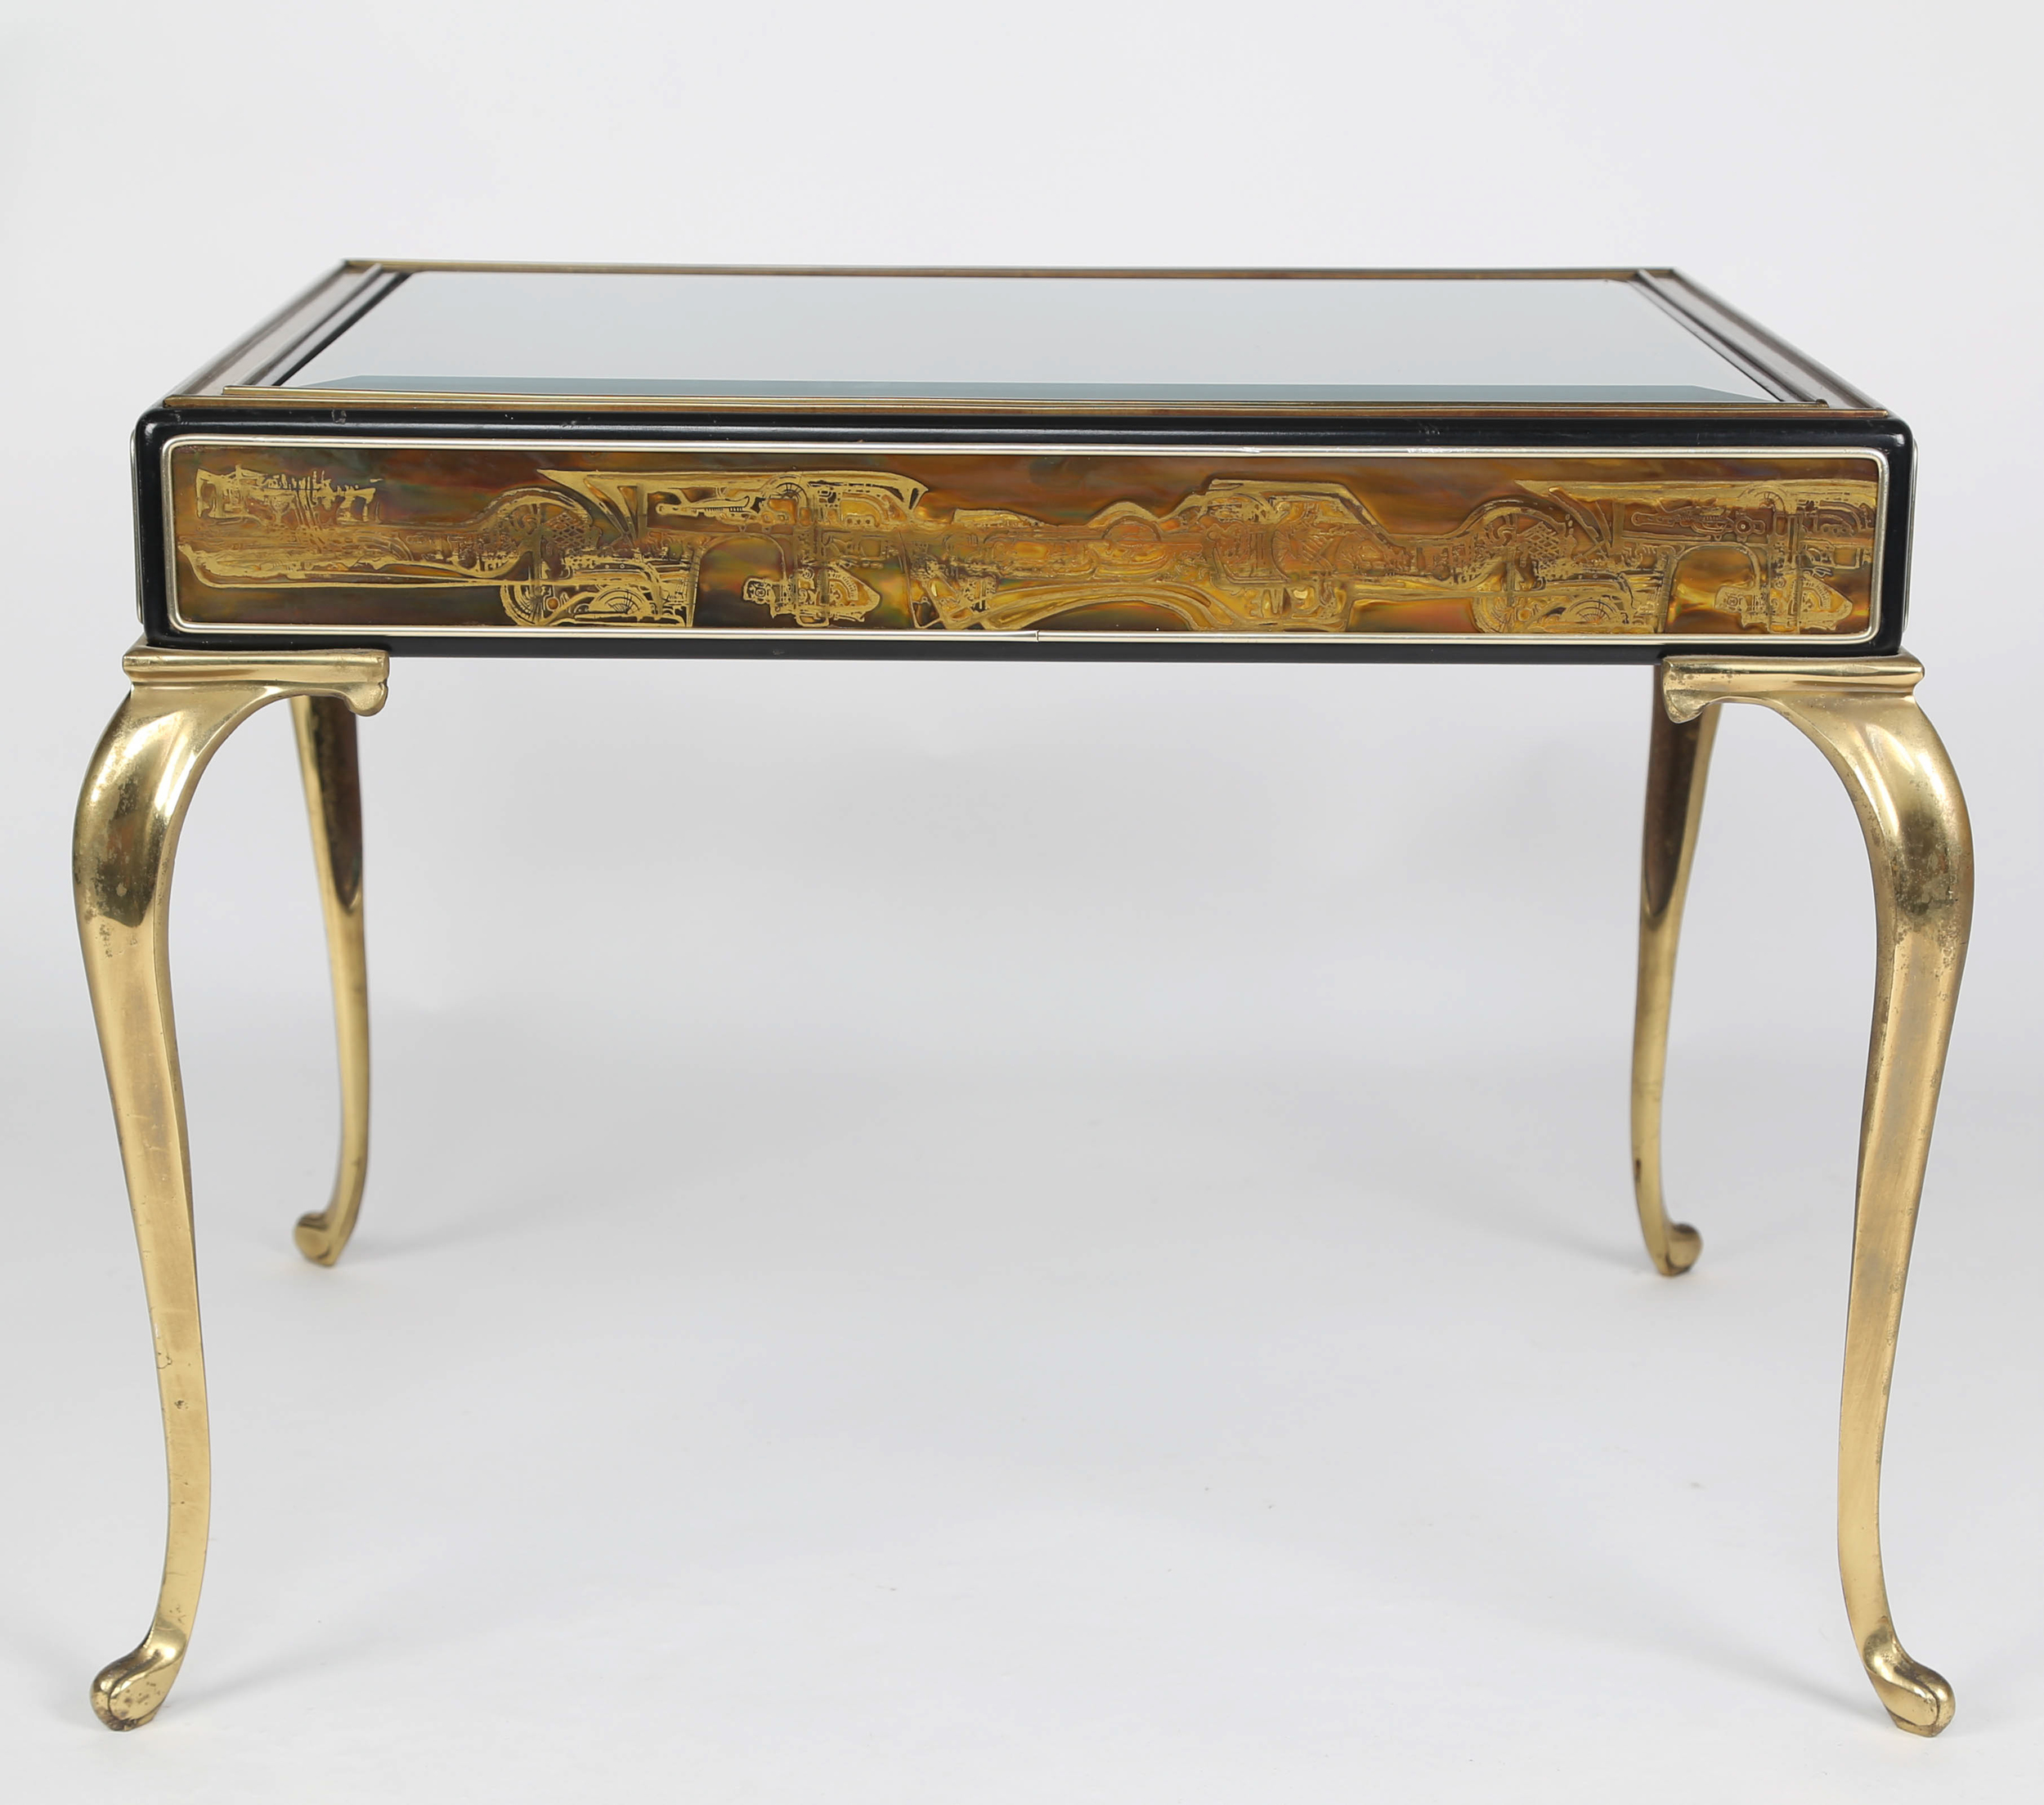 Brass And Acid Etched Bronze Side Table By Bernhard Rohne For